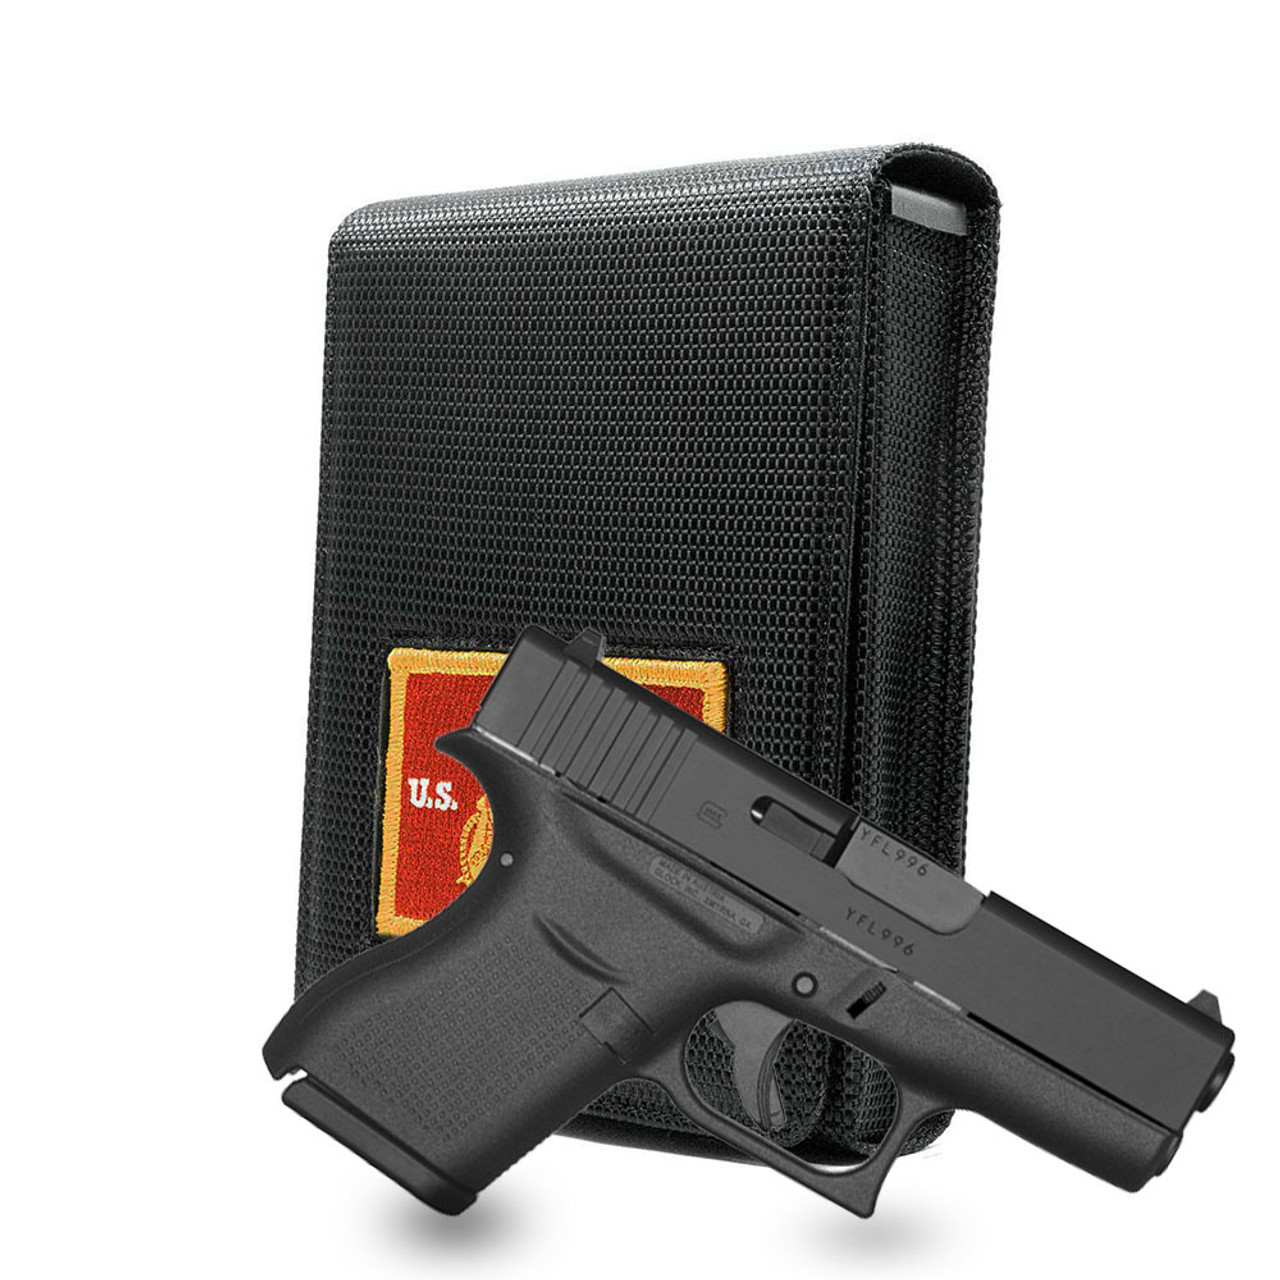 Glock 43 Marine Corps Tactical Patch Holster